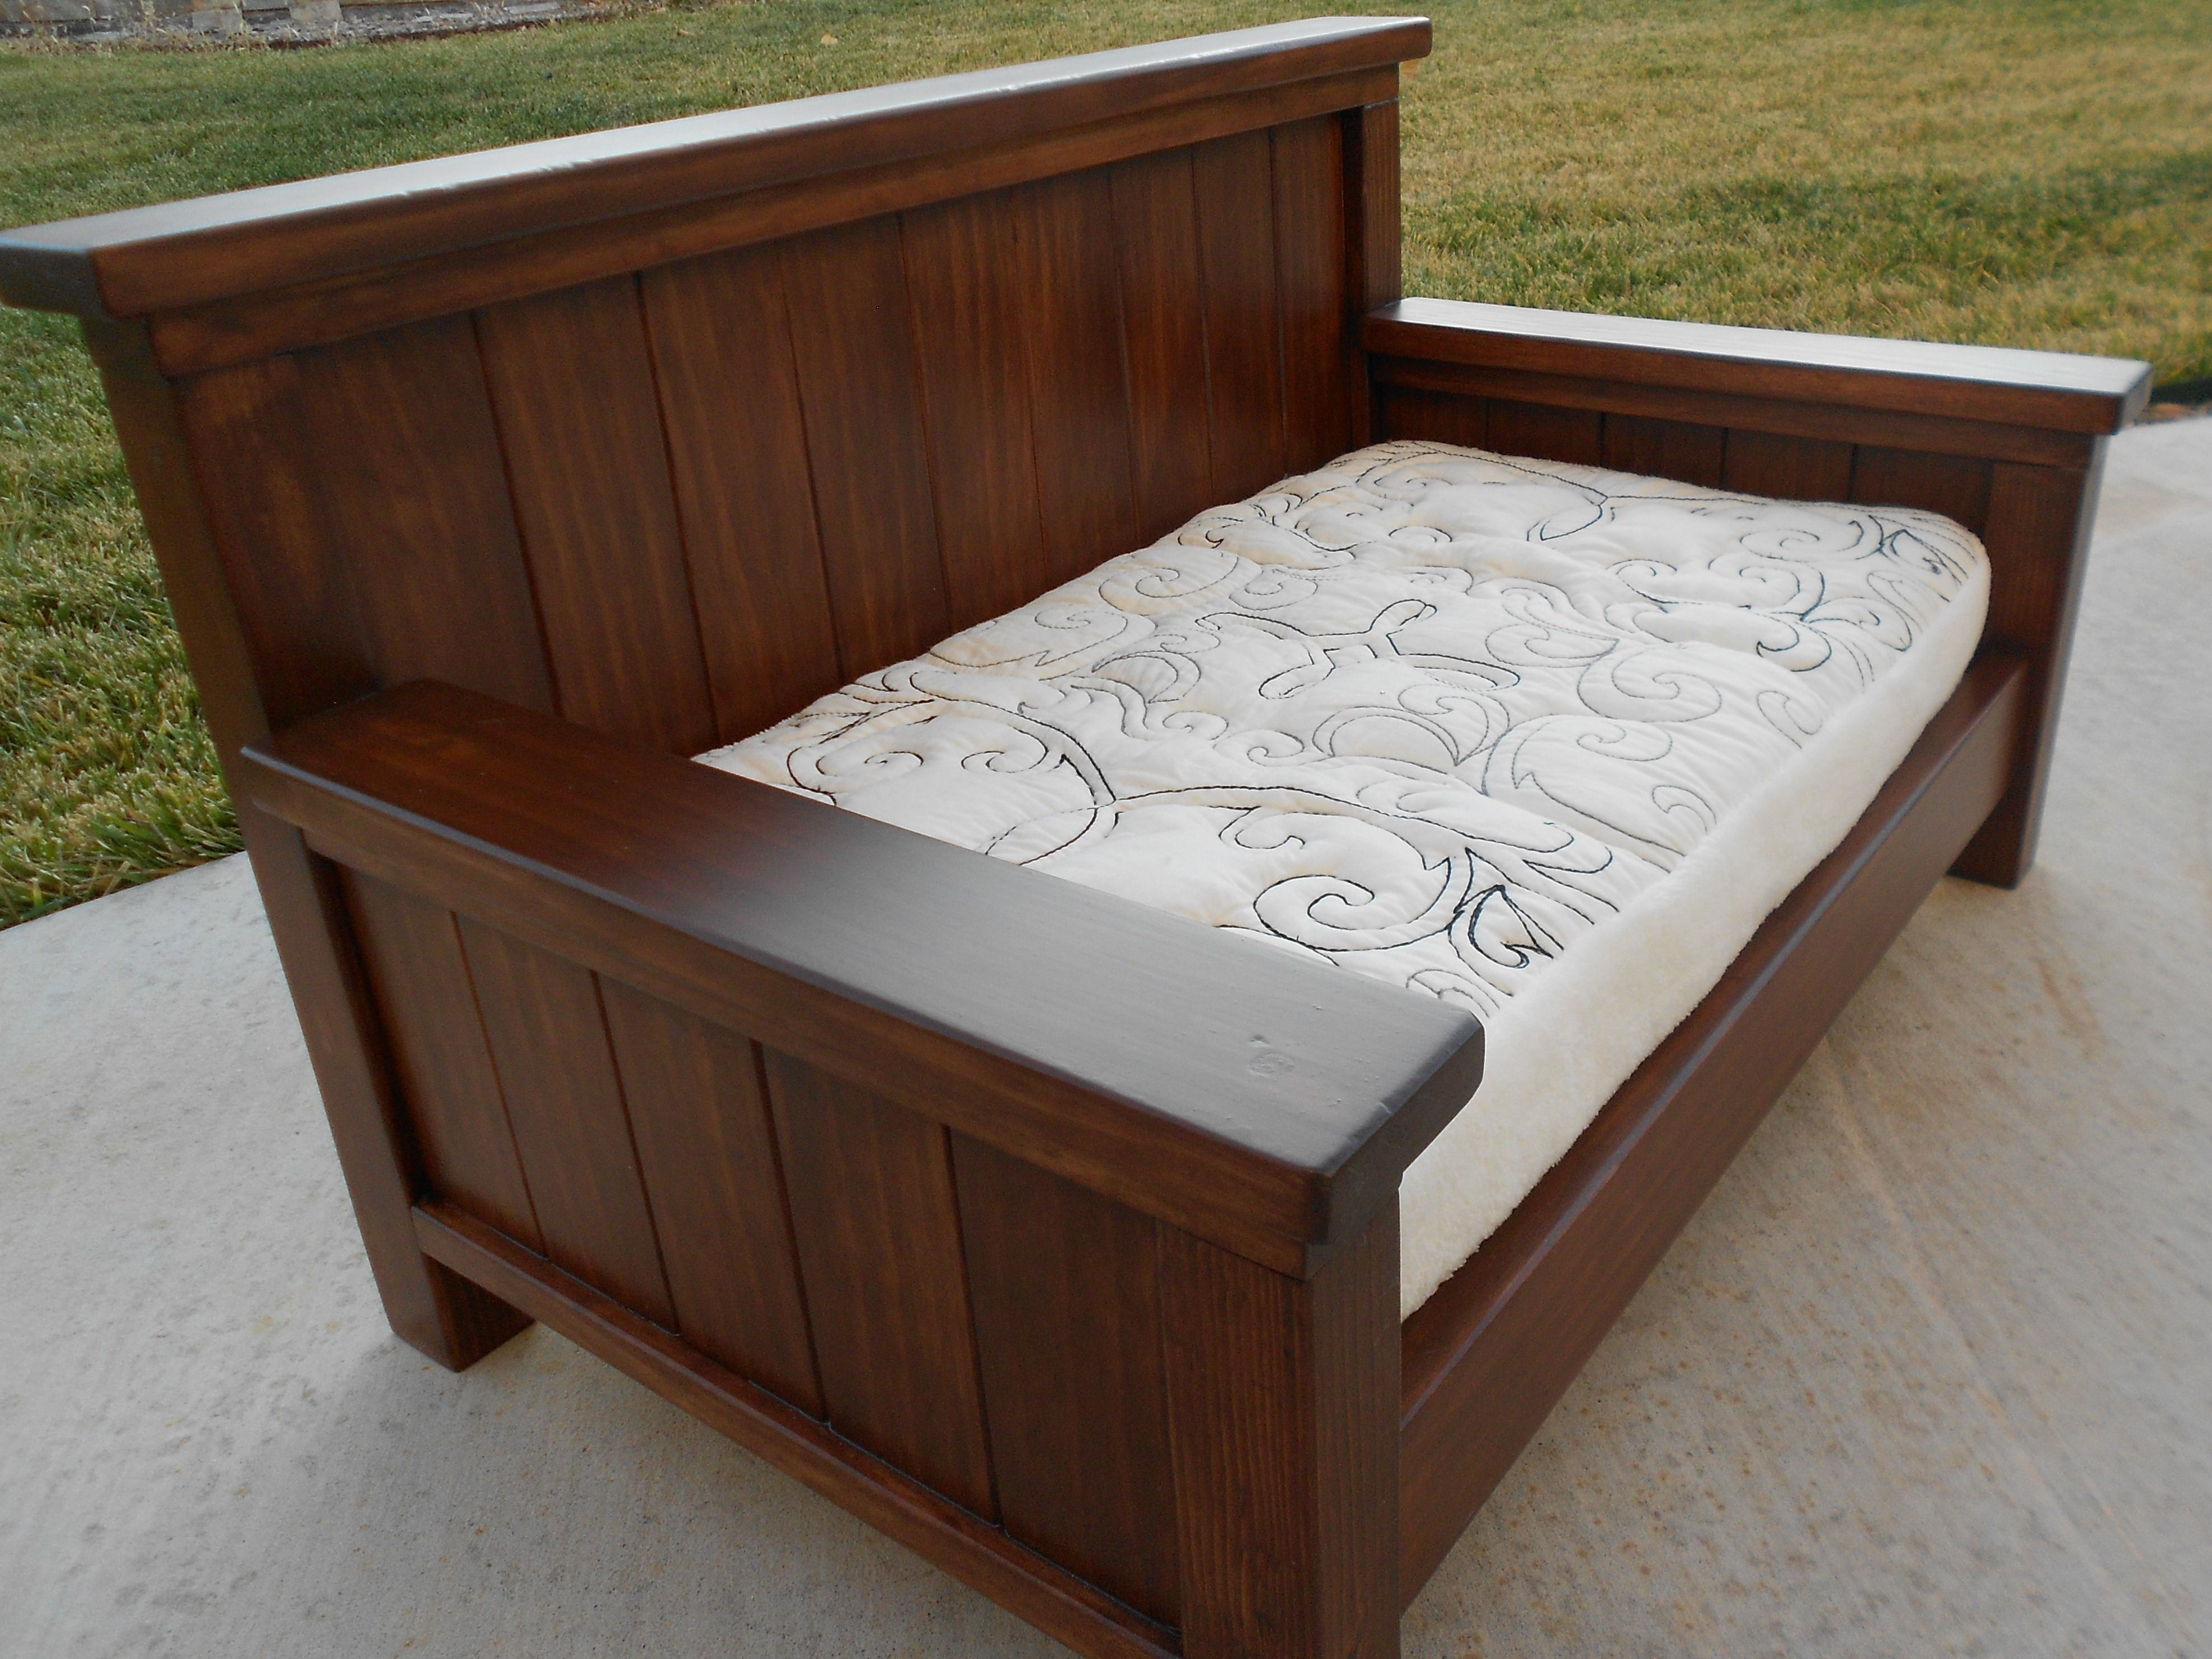 Queen Size Daybed From Plan new DIY Furniture